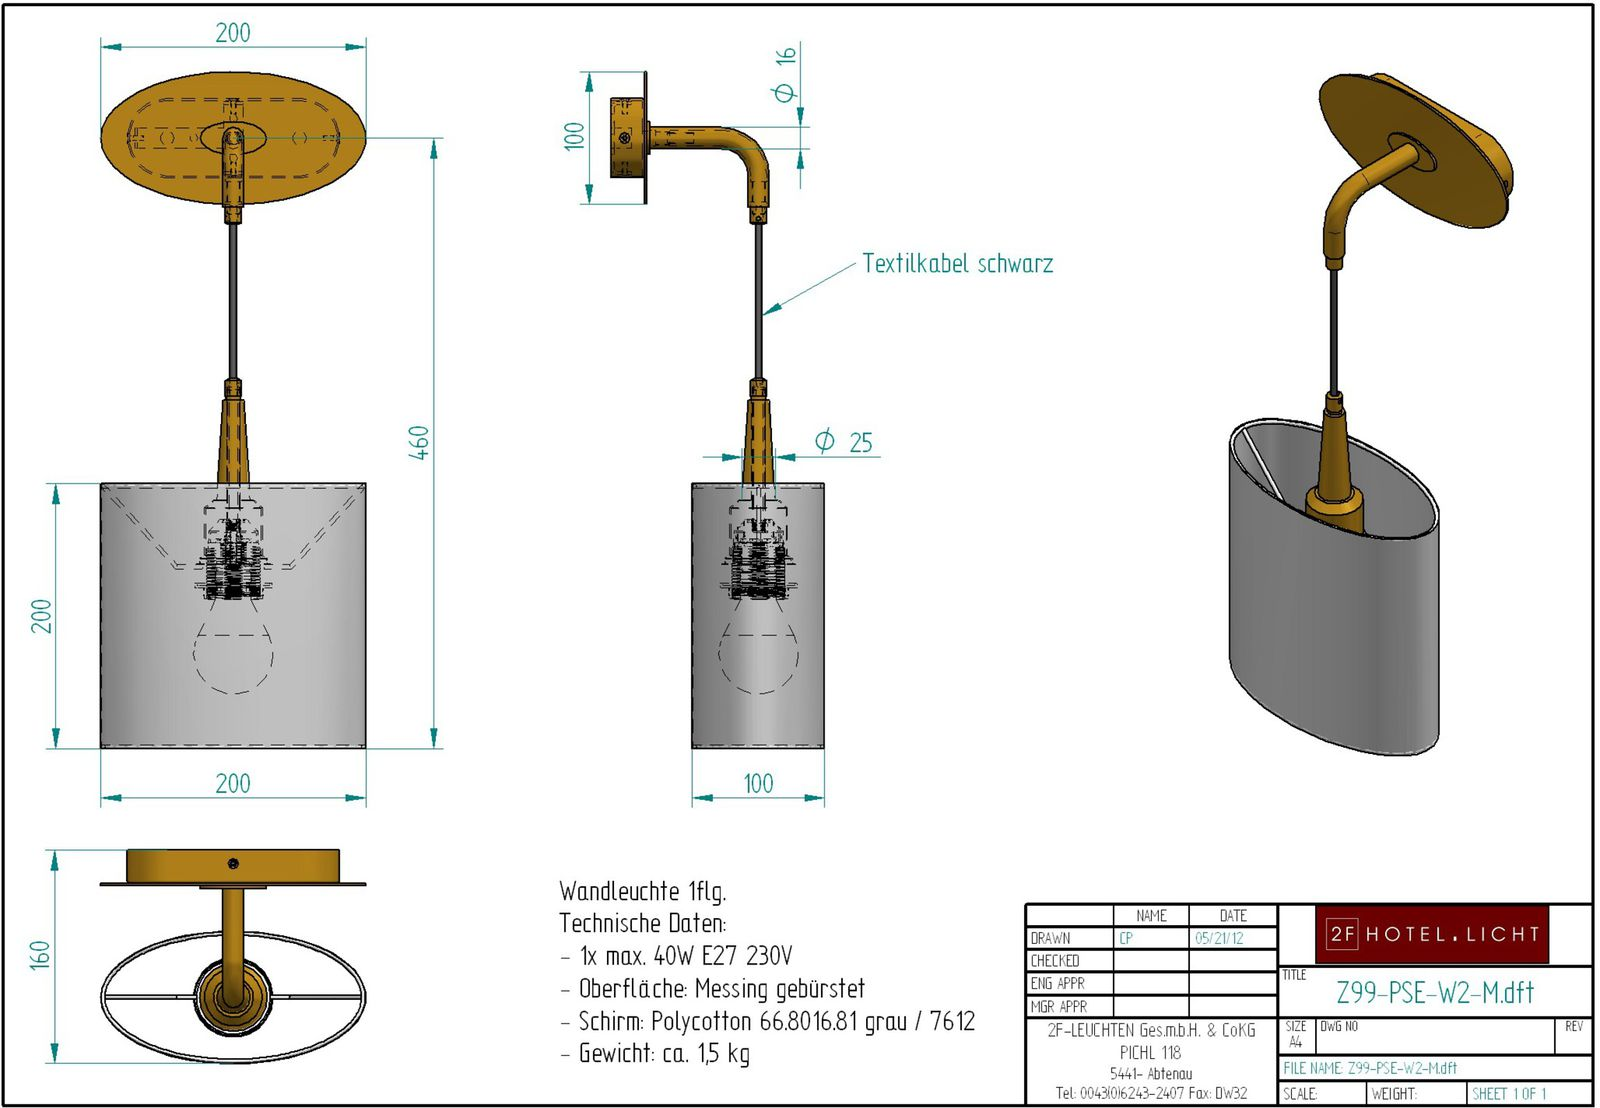 Wall lamp Pure Seed, measure: 200mmx160mm, height=510mm